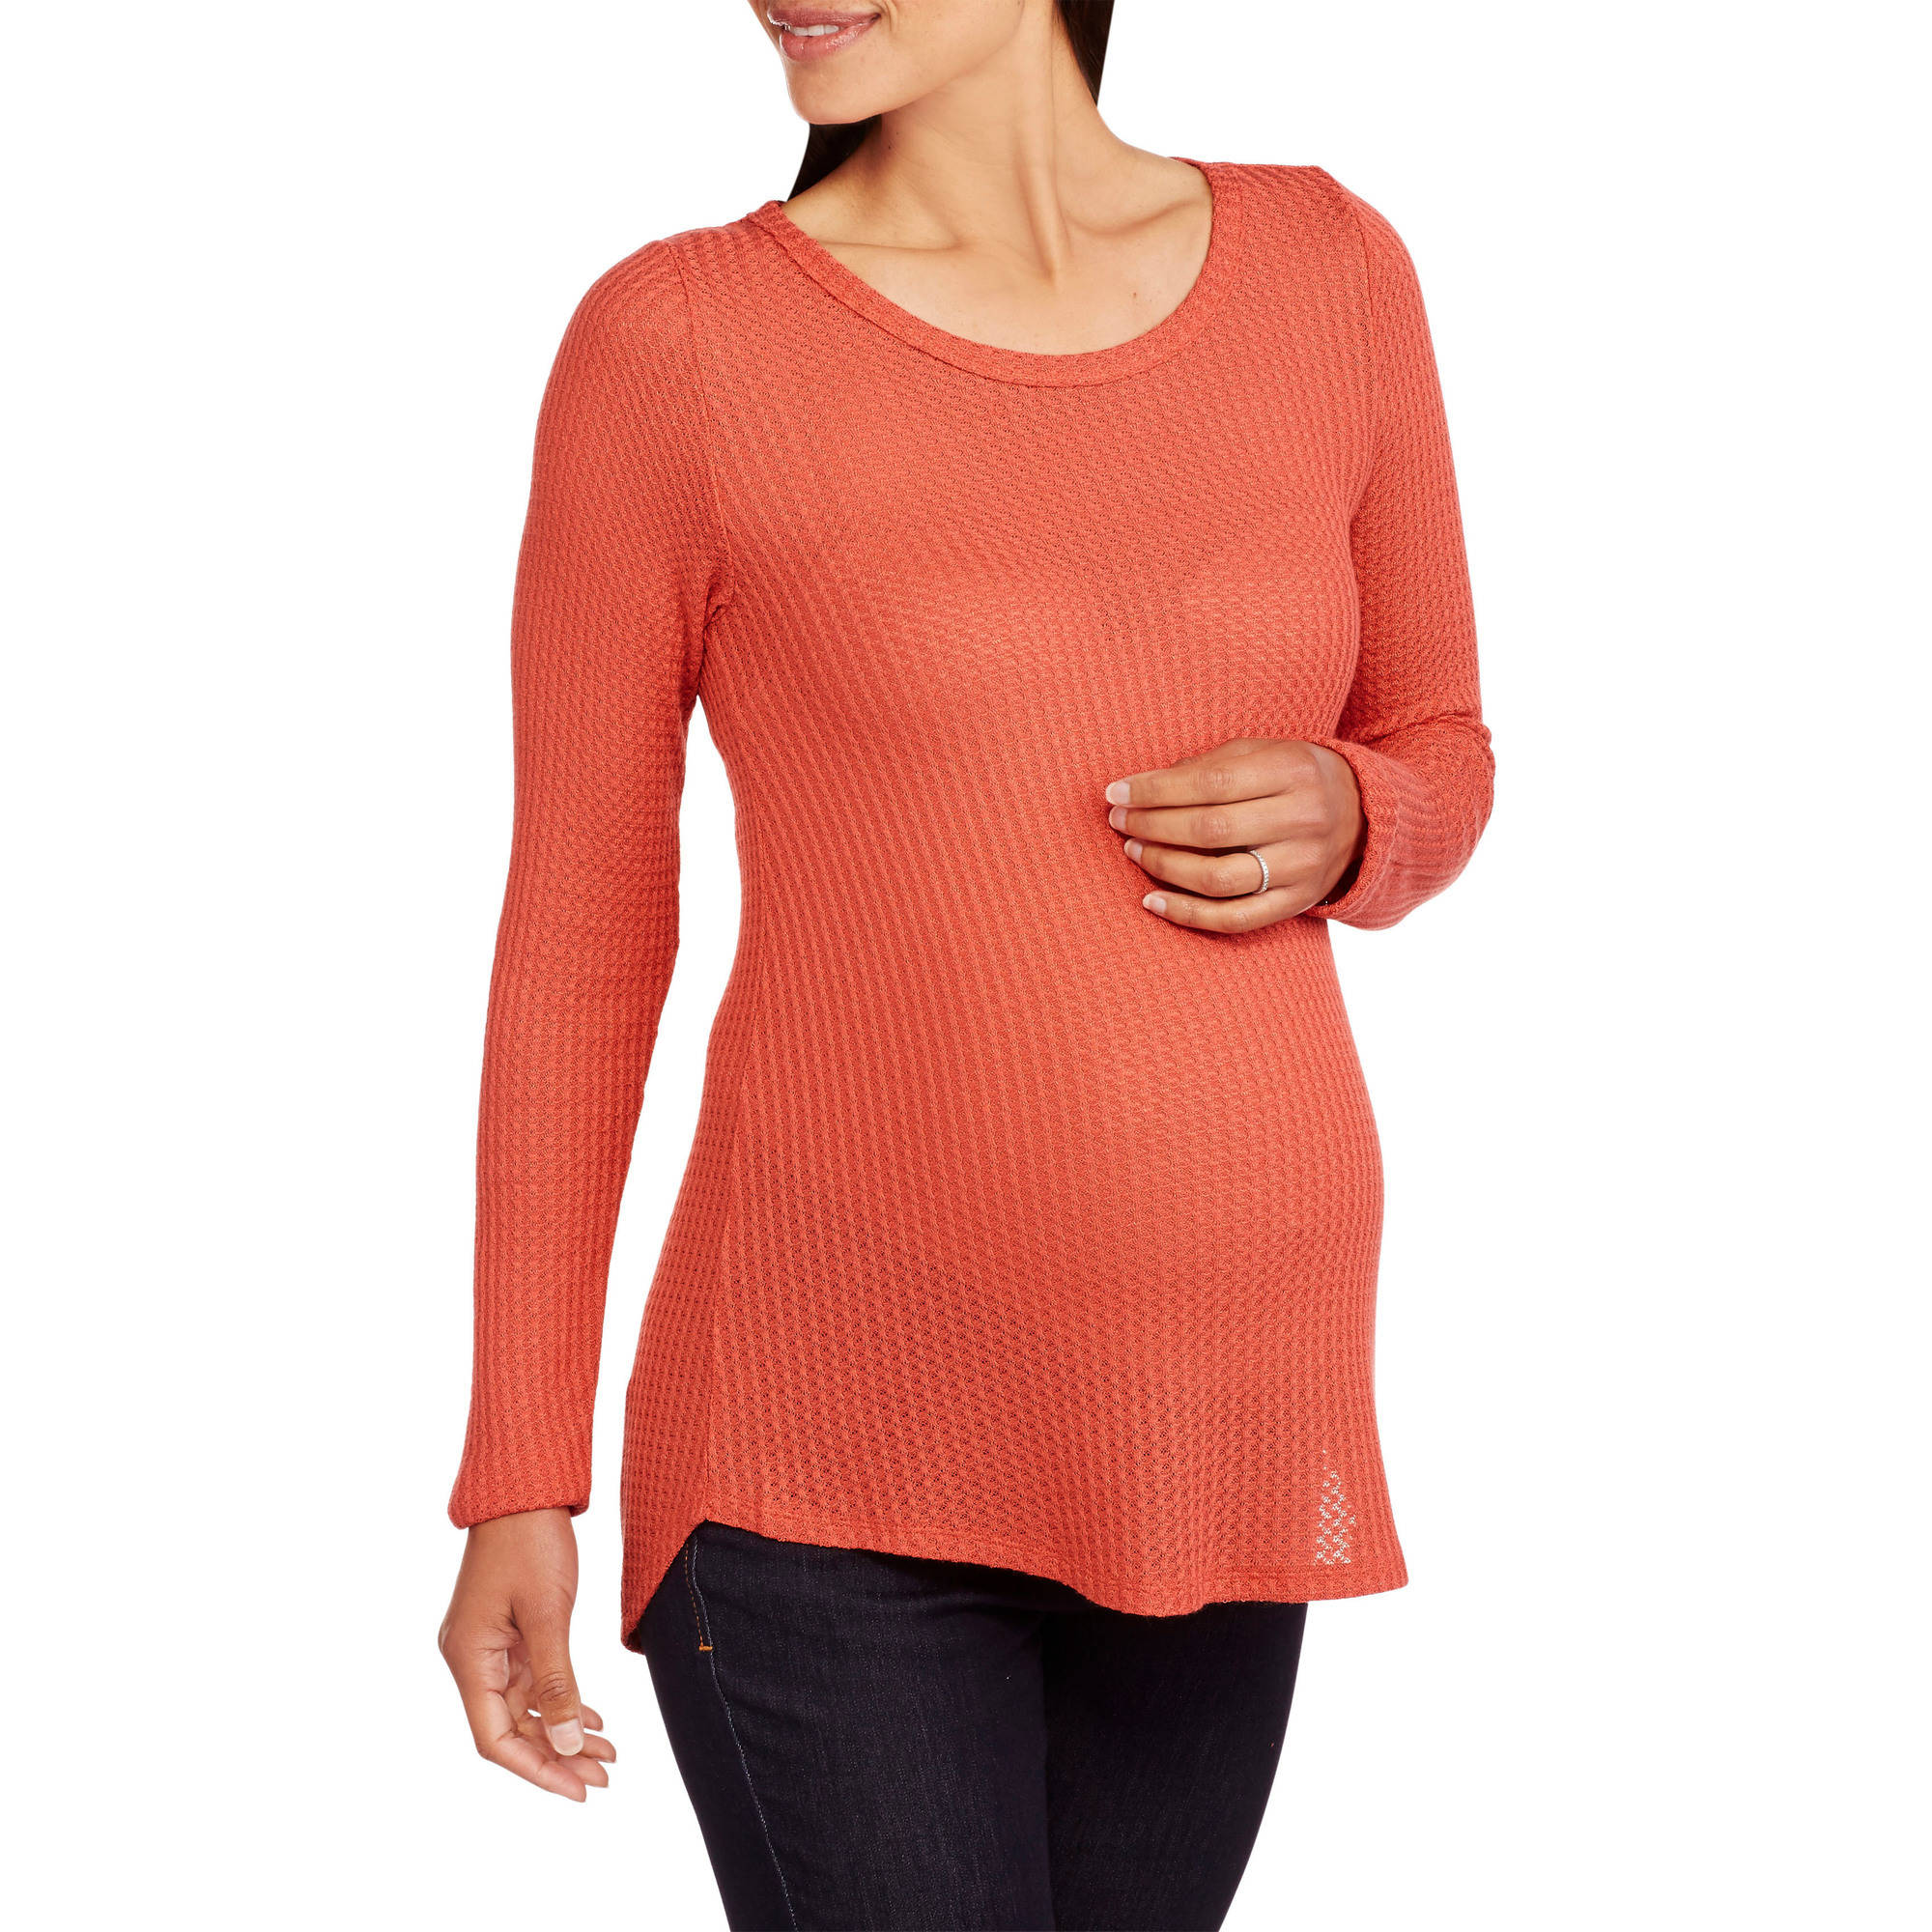 Inspire Maternity Long Sleeve Ribbed Crew Neck Top